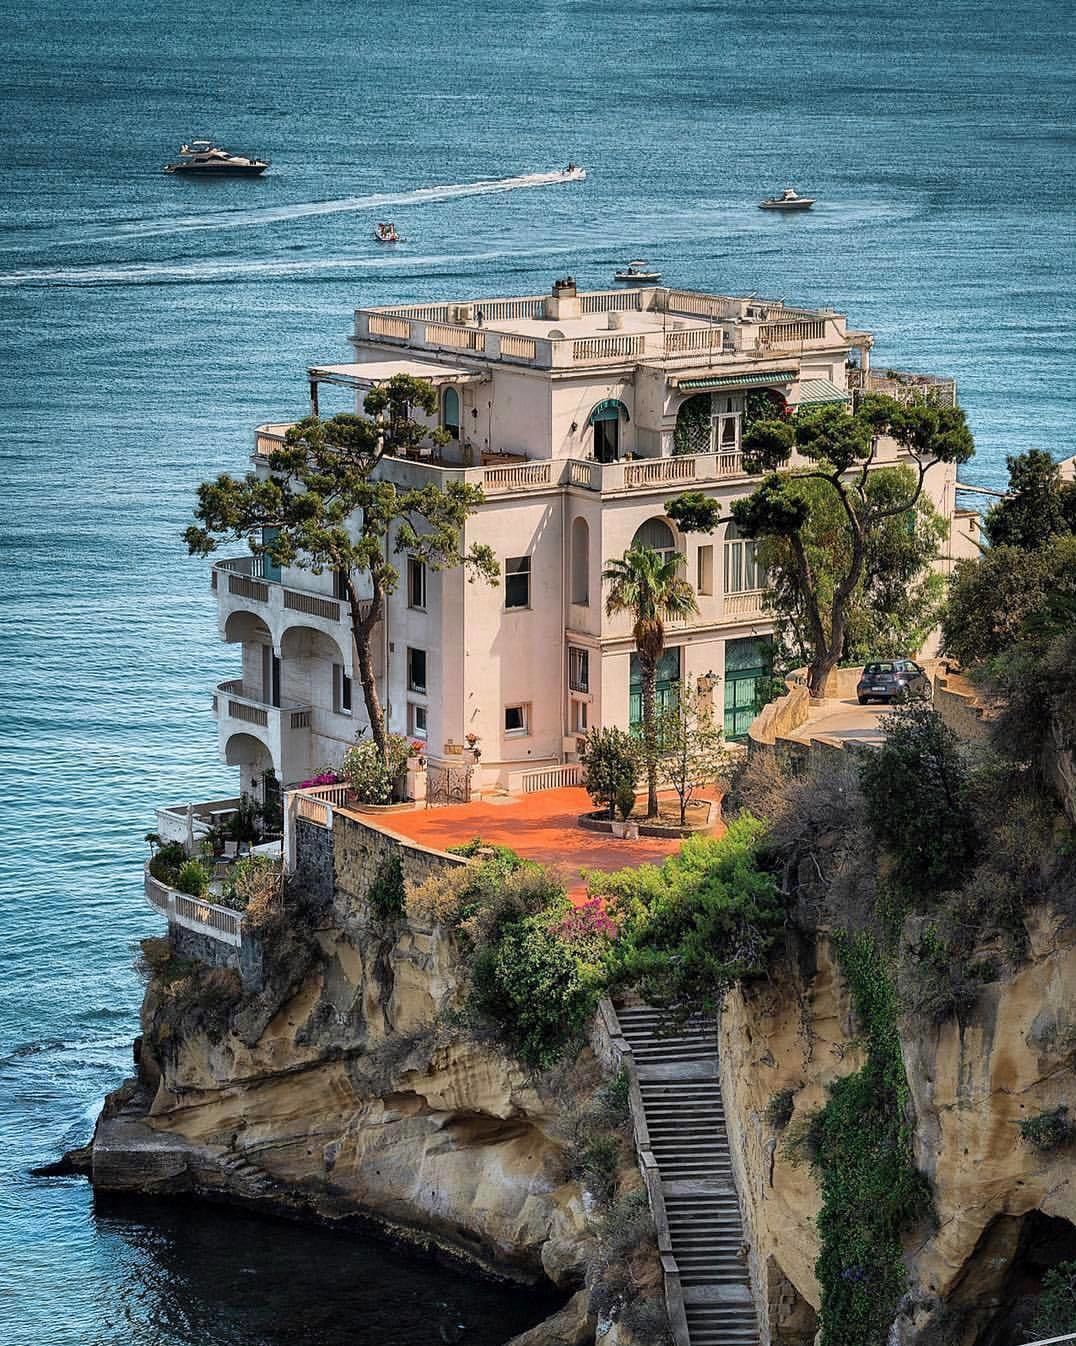 Seafront Residence in Naples, Italy 📷 paolo.schiano